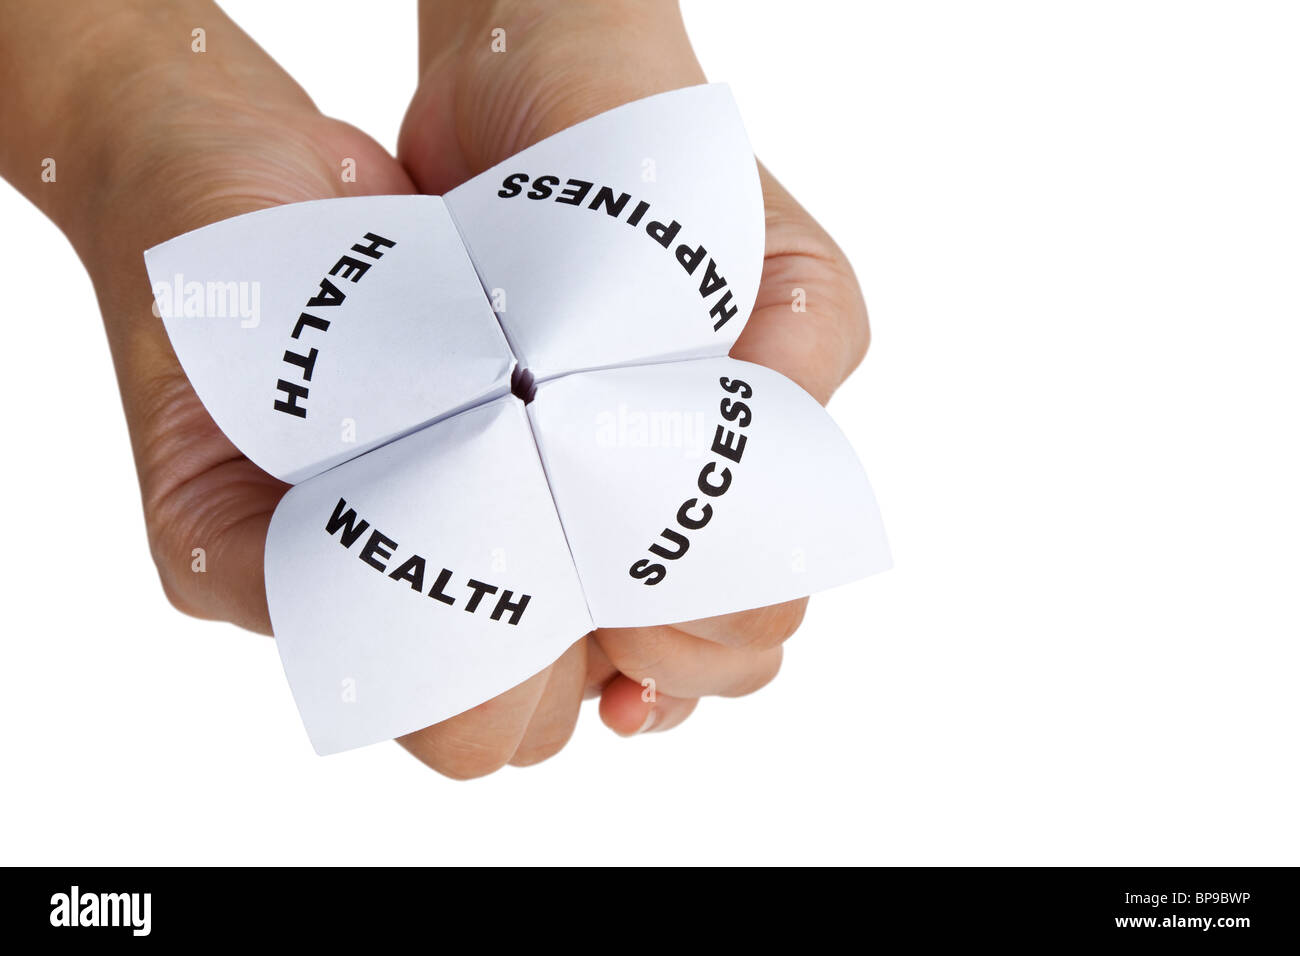 Paper Fortune Teller,concept of life balance - Stock Image